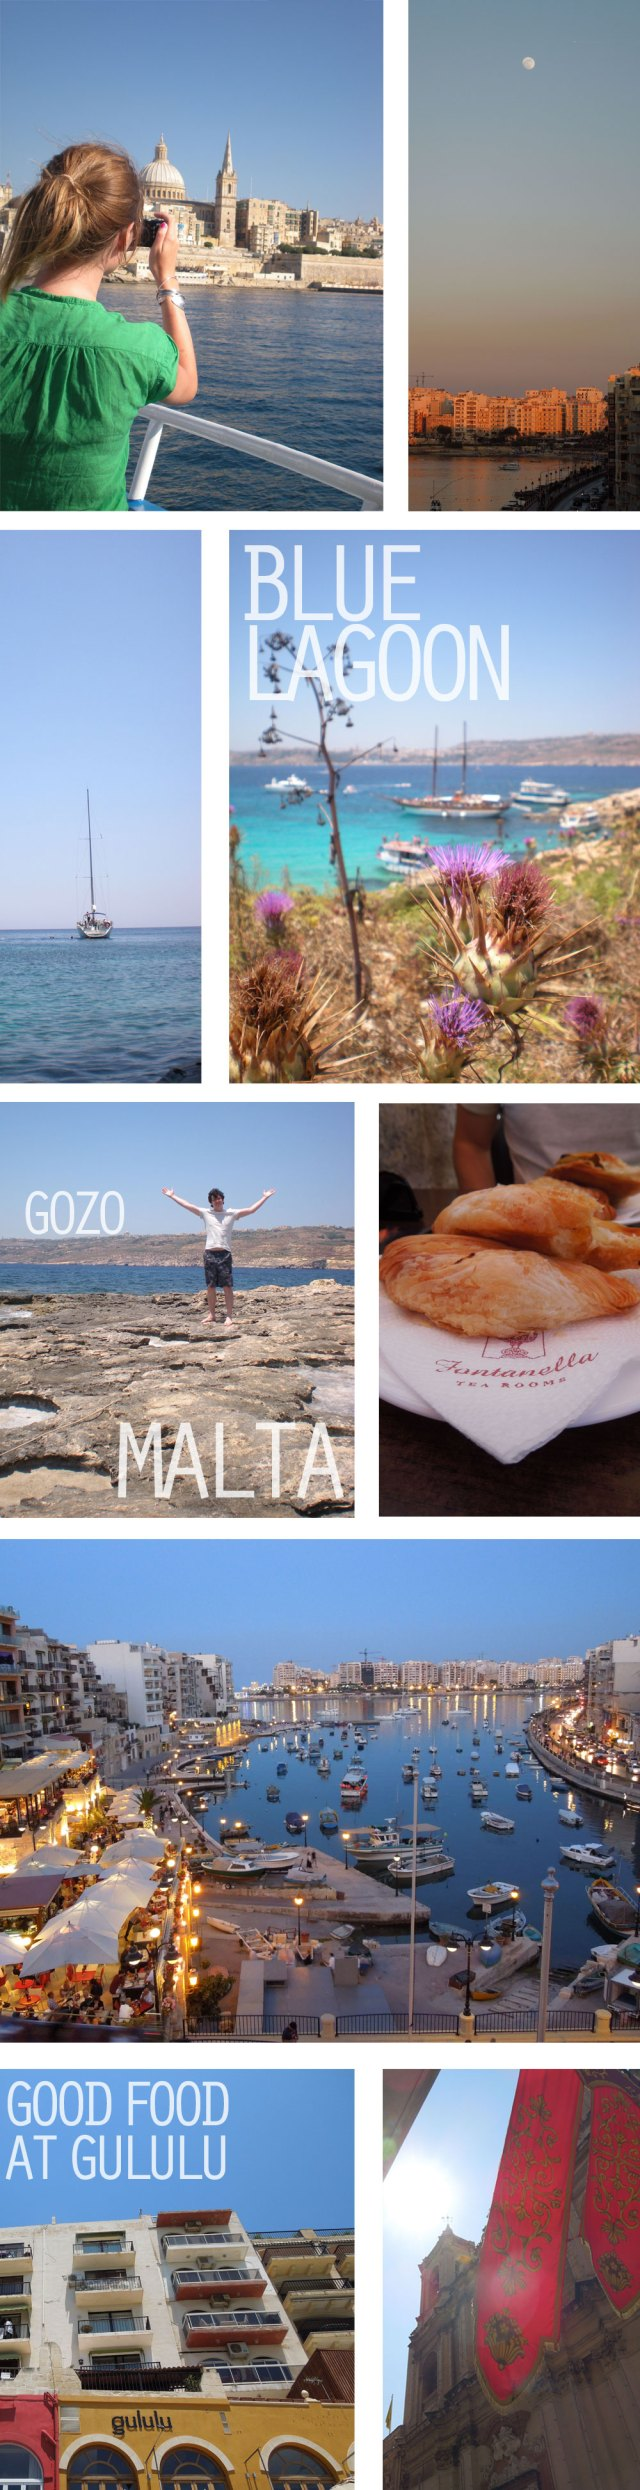 Malta photo collage